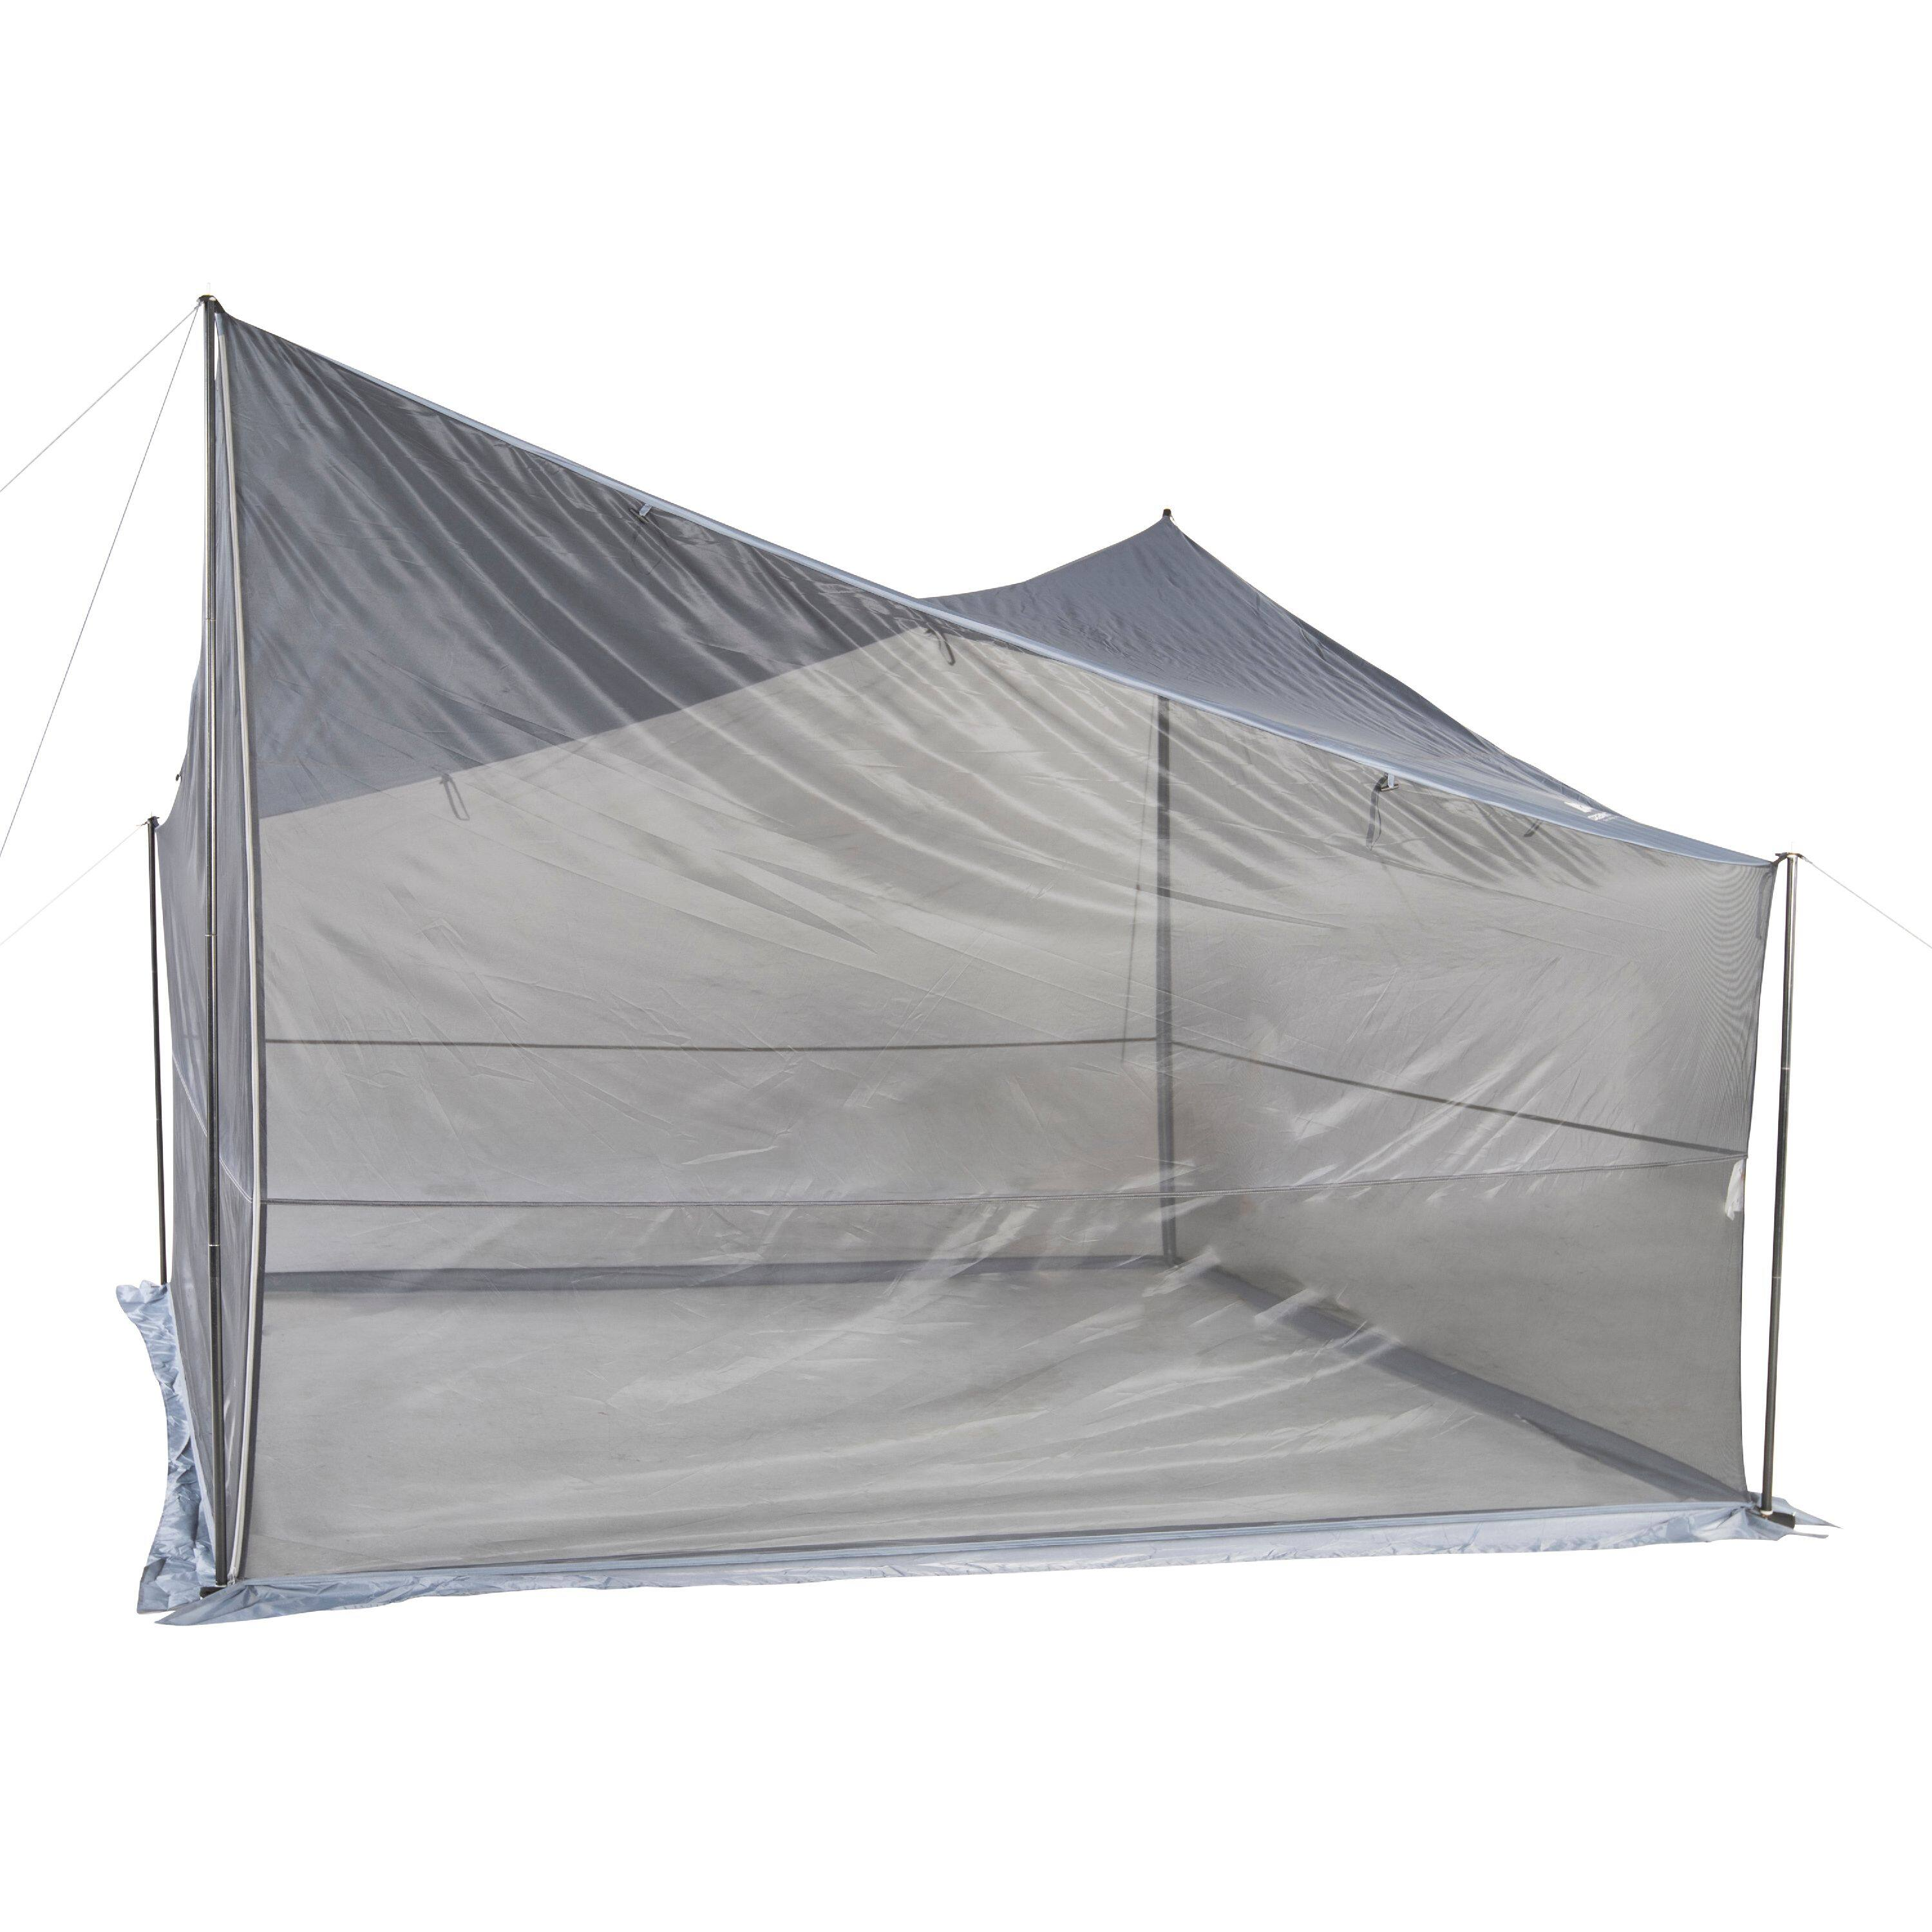 Ozark Trail Tarp Shelter w/ UV Protection & Roll-up Screen Walls